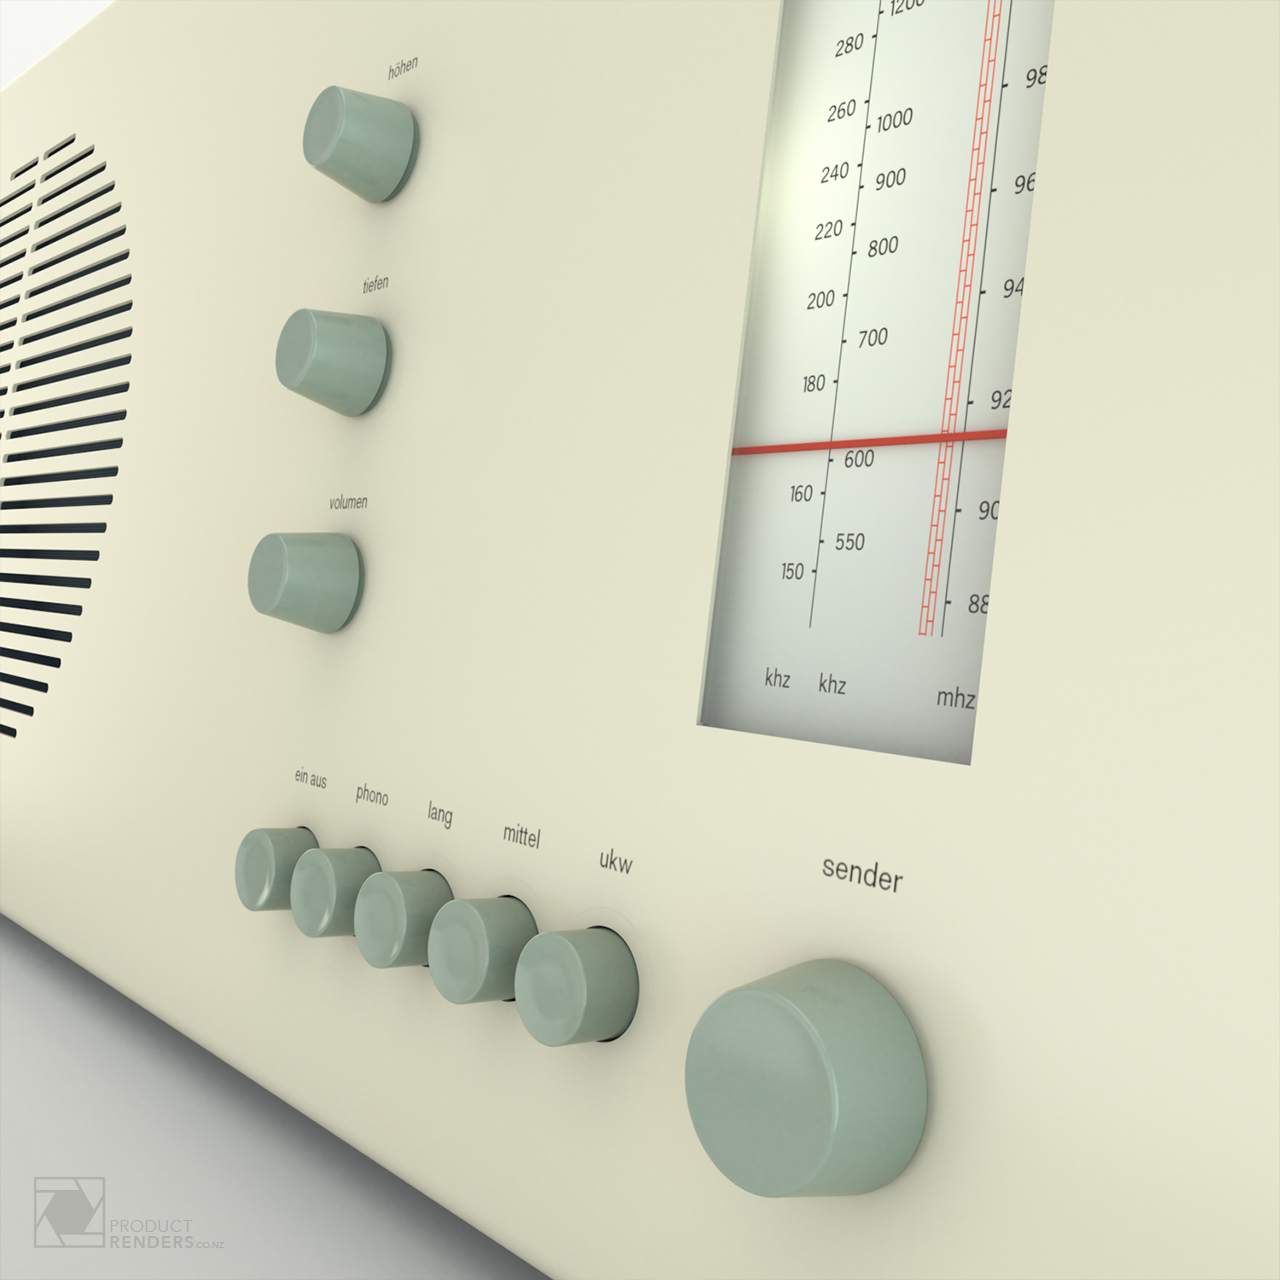 3D product render of a Braun RT20 radio designed by Dieter Rams in 1961 - Close up of the buttons and dial